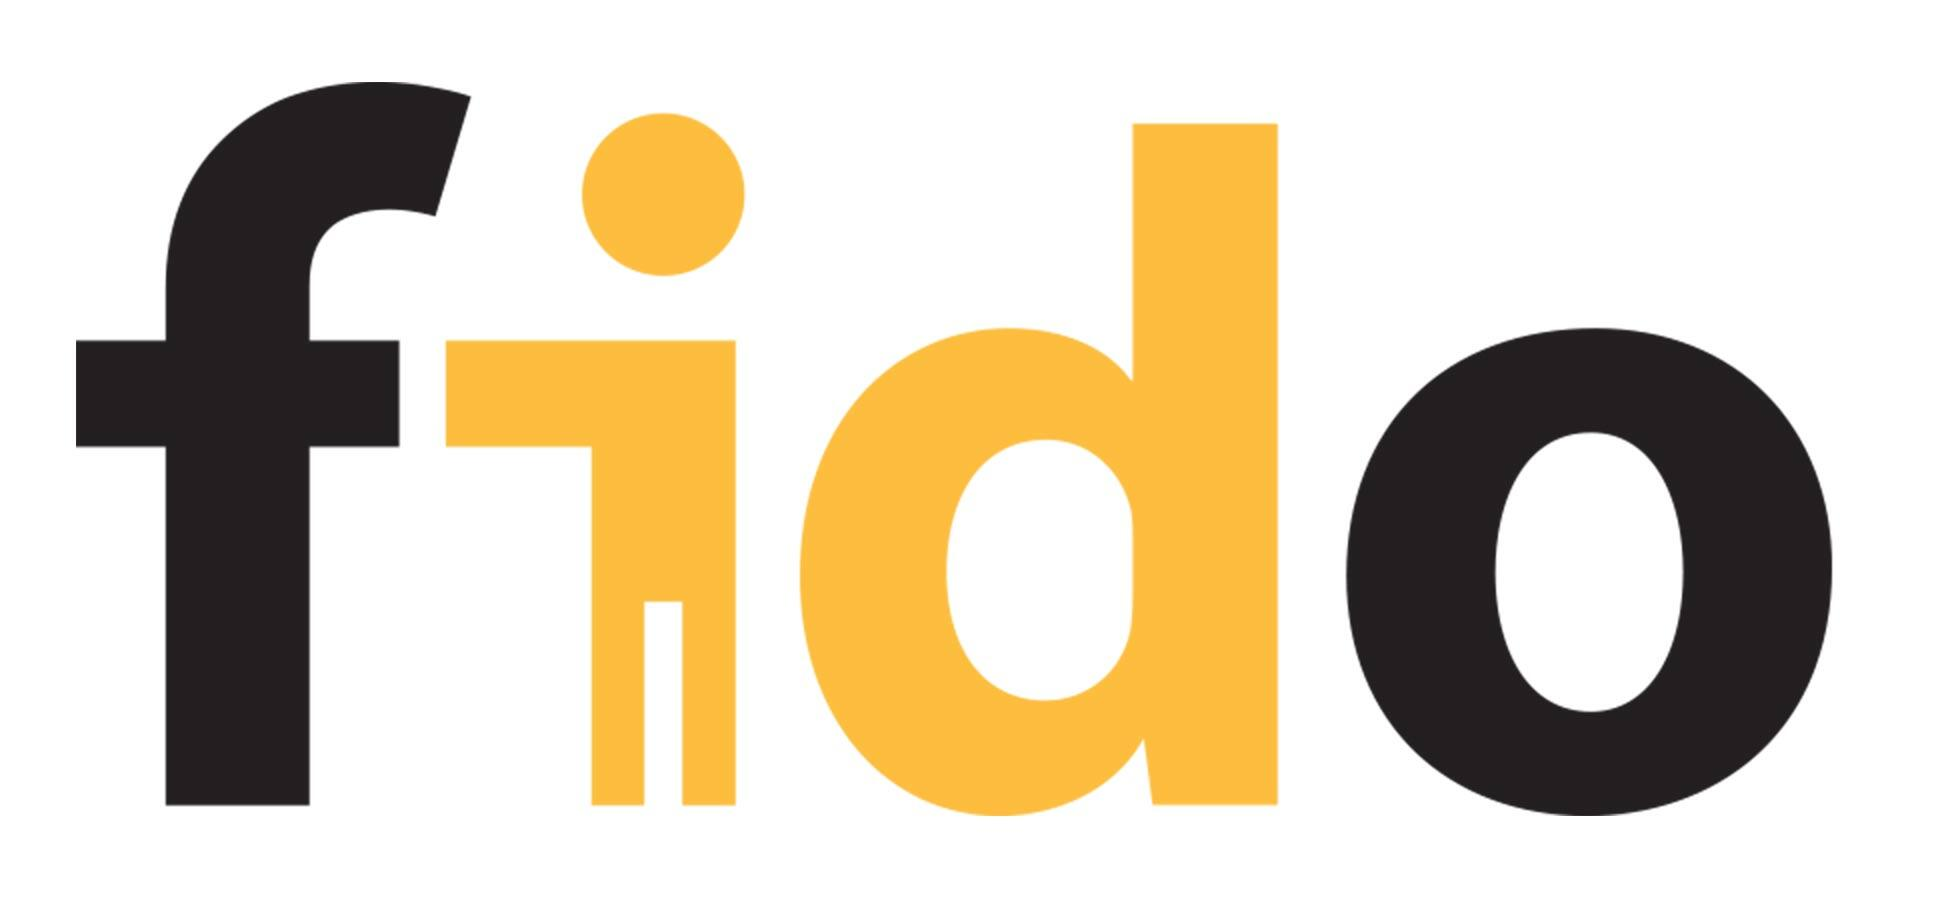 Expect to see this FIDO Alliance logo on websites that adopted the authentication standard for better security.